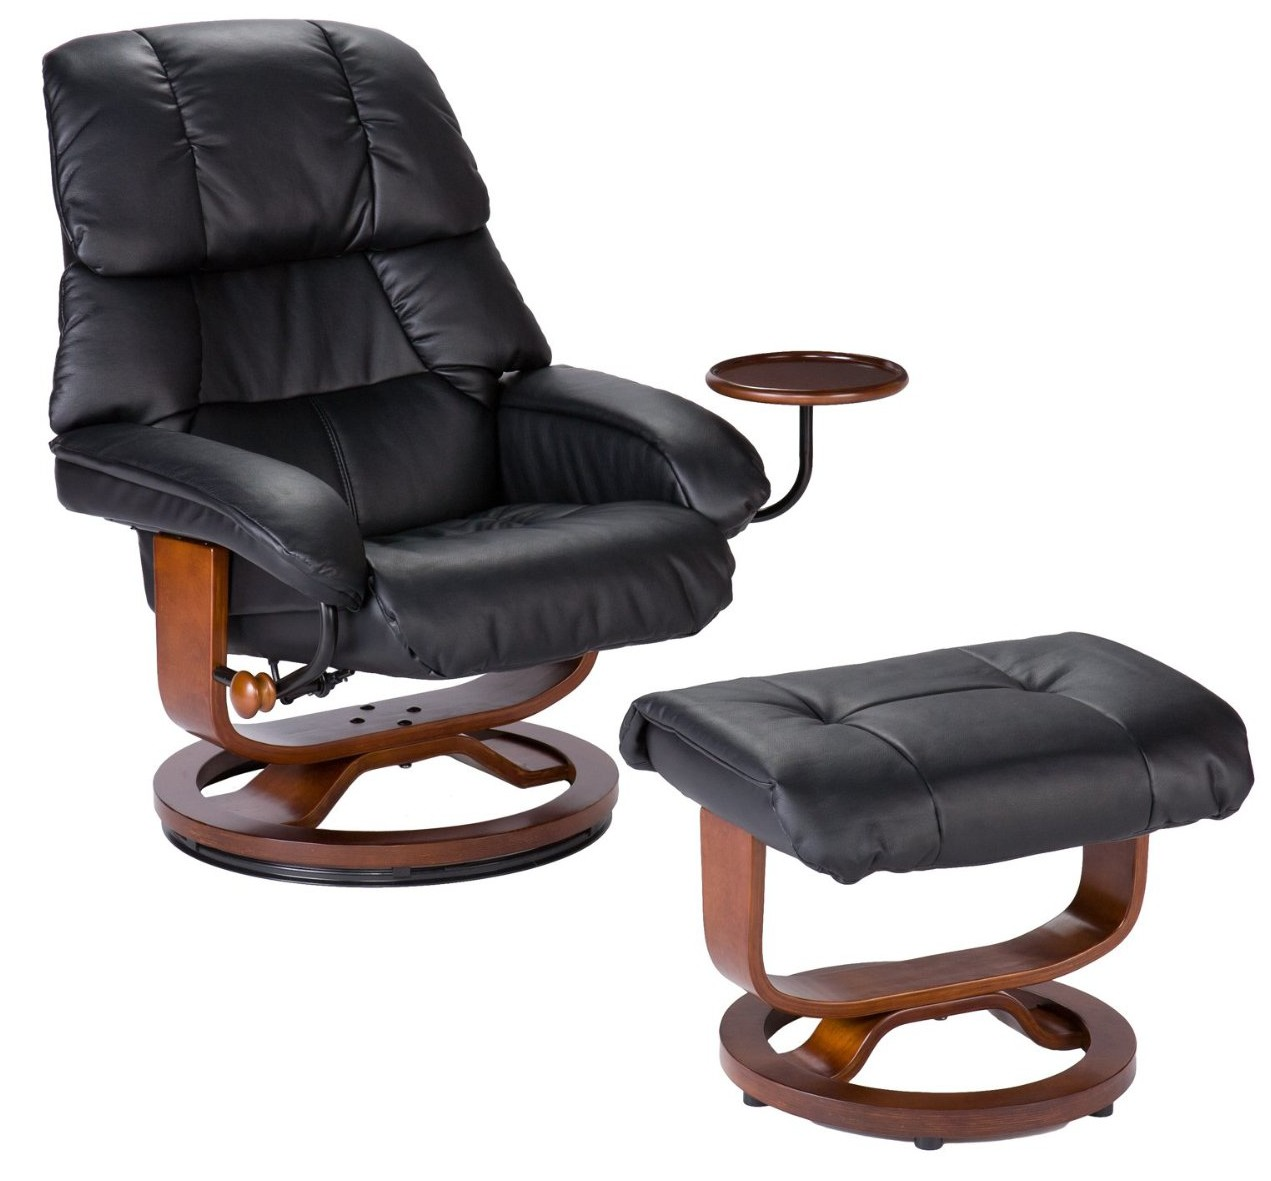 contemporary recliners a guide for the buyers best recliners